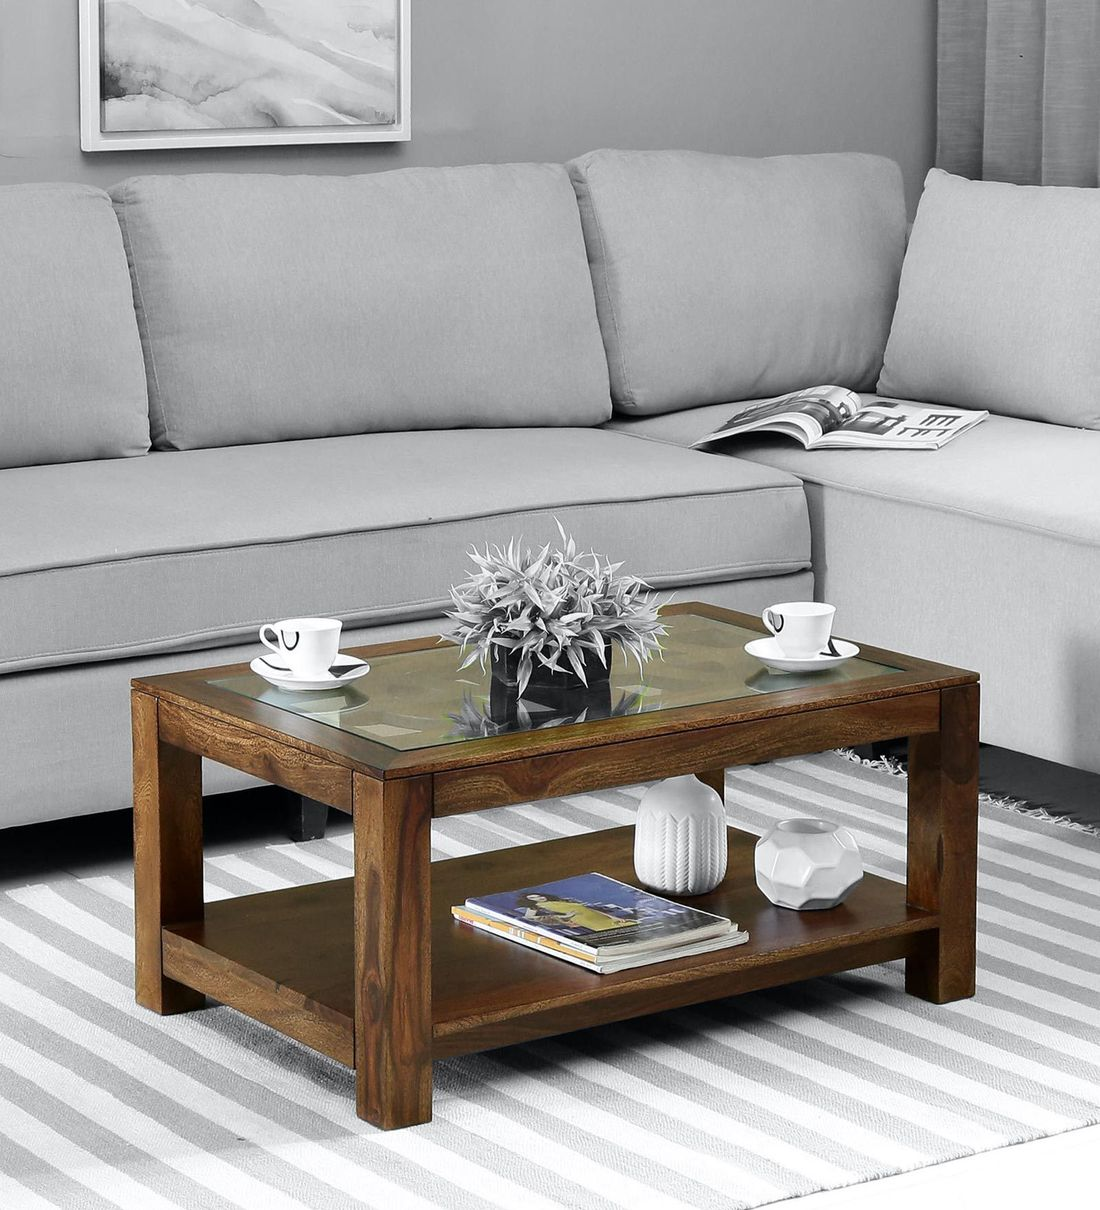 Picture of: Buy Mckenzy Solid Wood Coffee Table With Glass Top In Provincial Teak Finish By Woodsworth Online Contemporary Rectangular Coffee Tables Tables Furniture Pepperfry Product